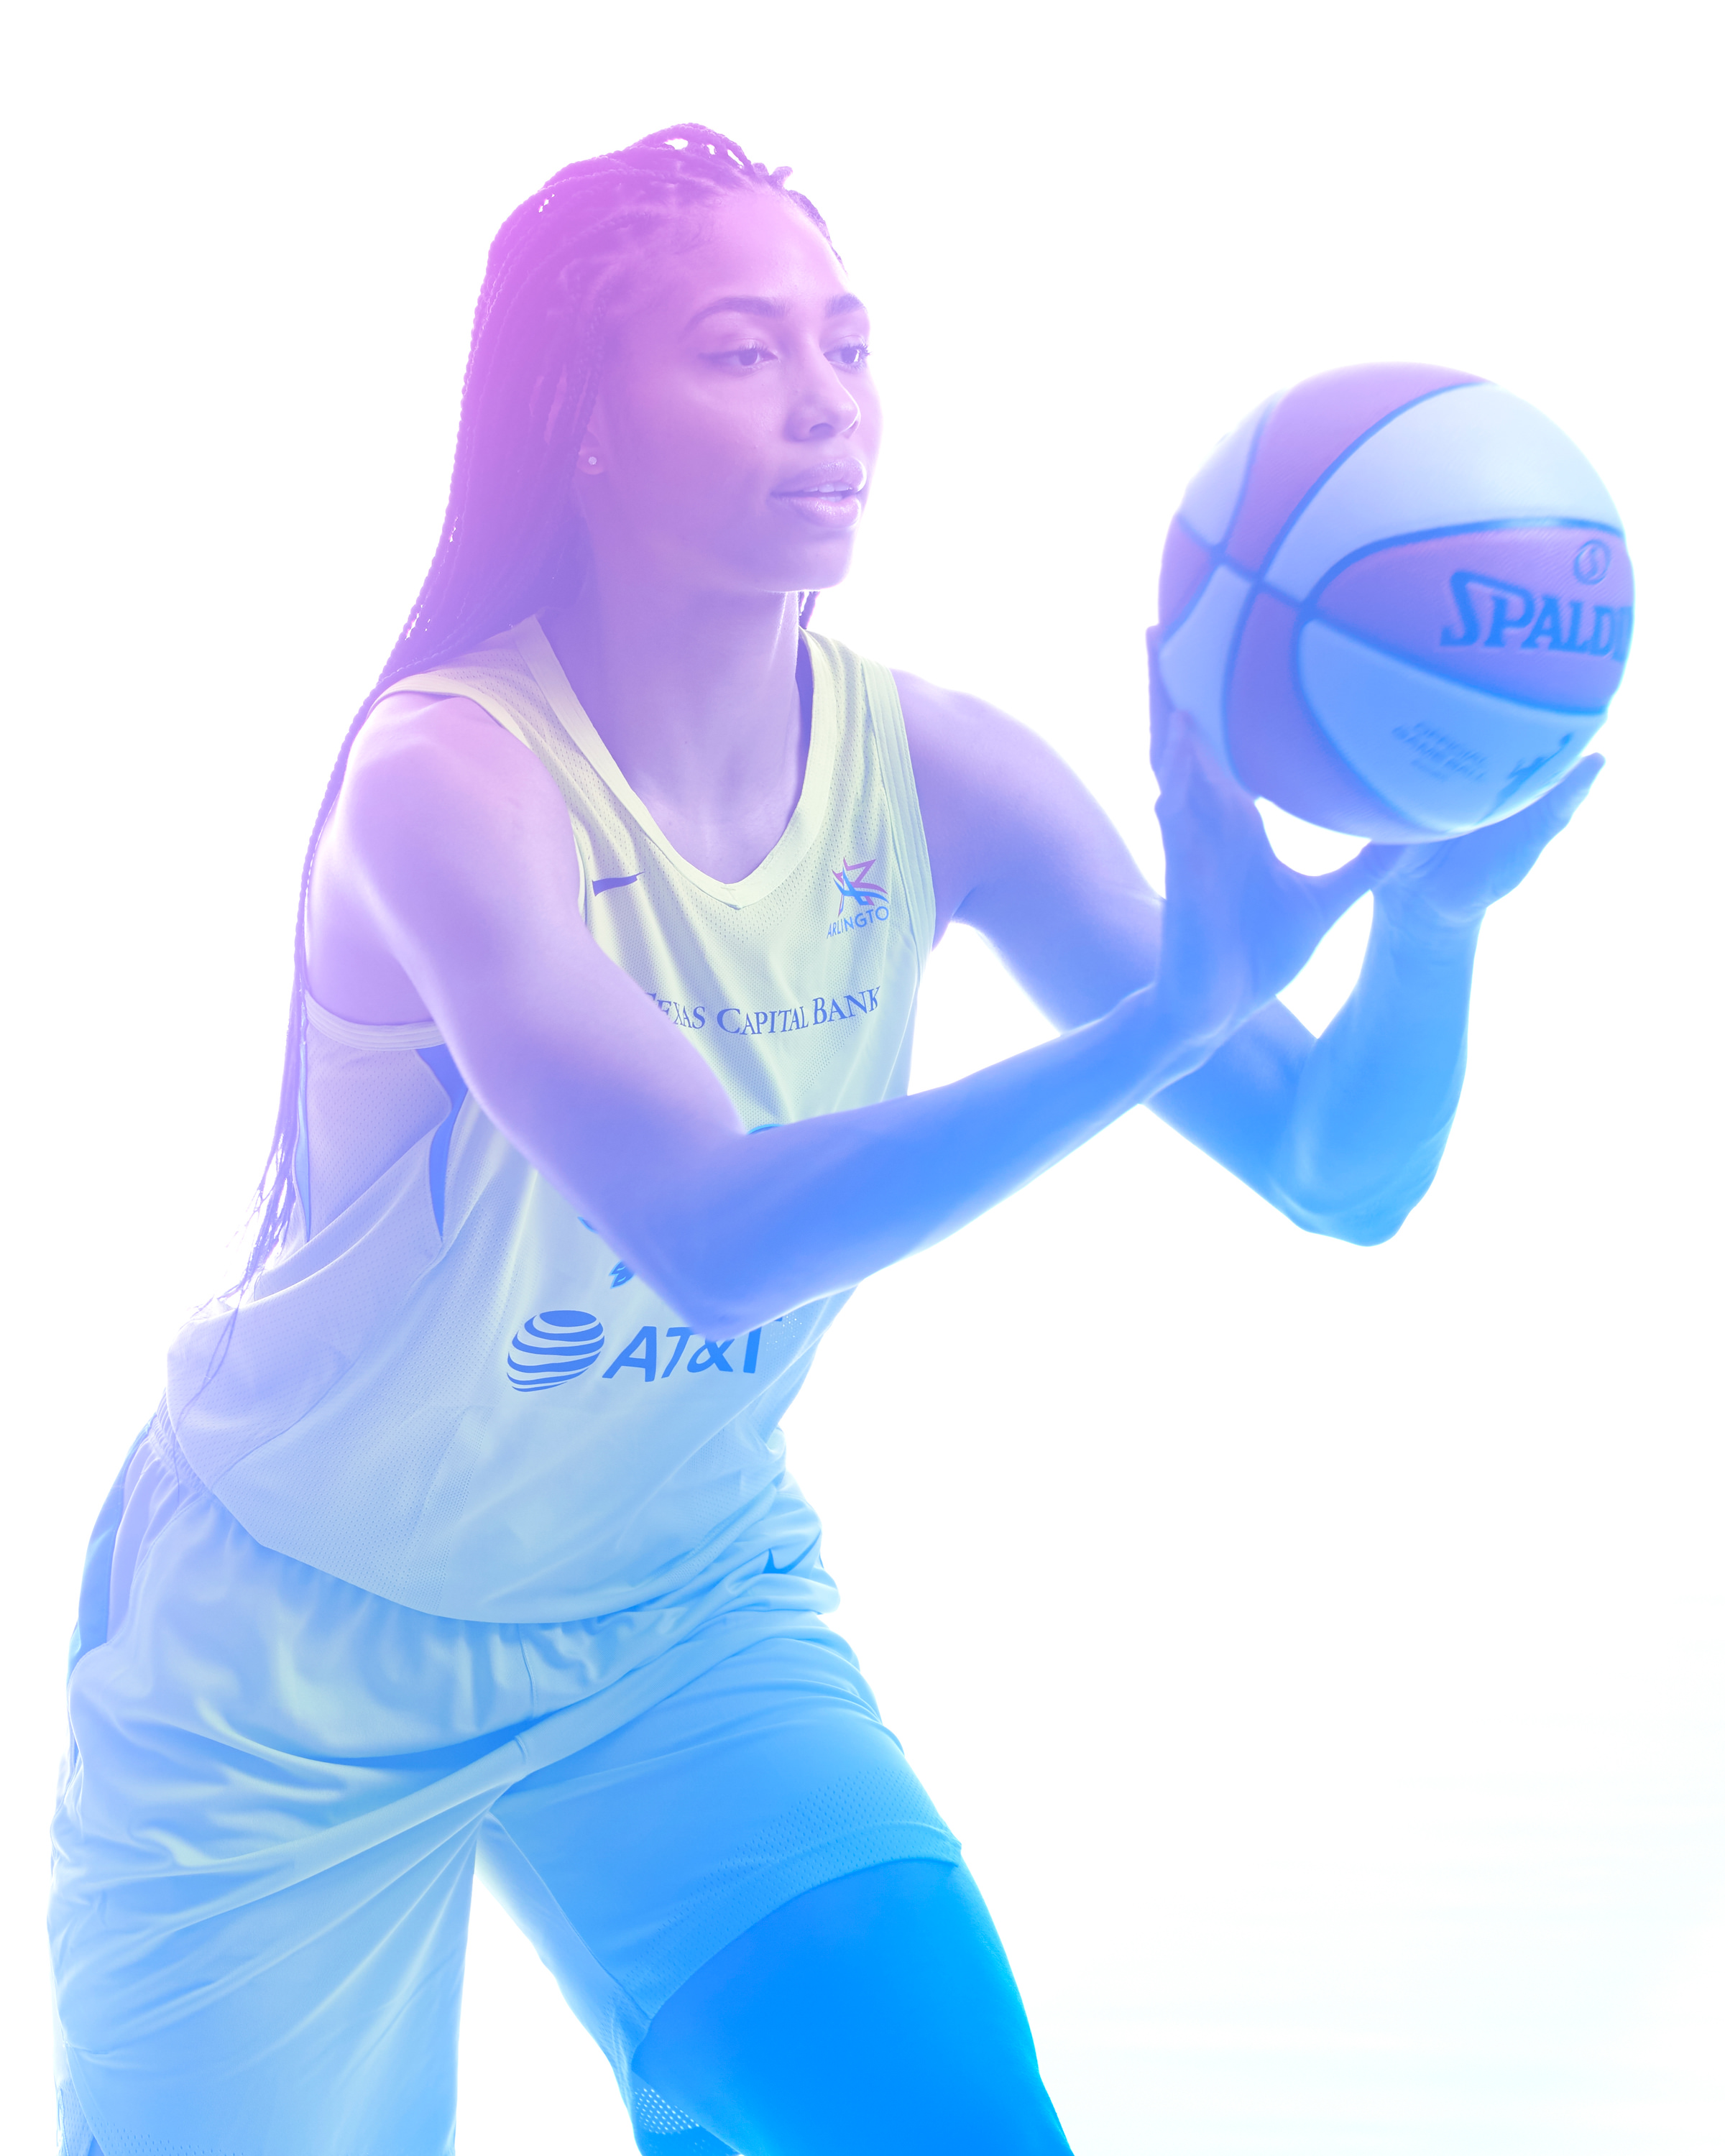 edit_06-26-2020_DallasWings_029341.JPG